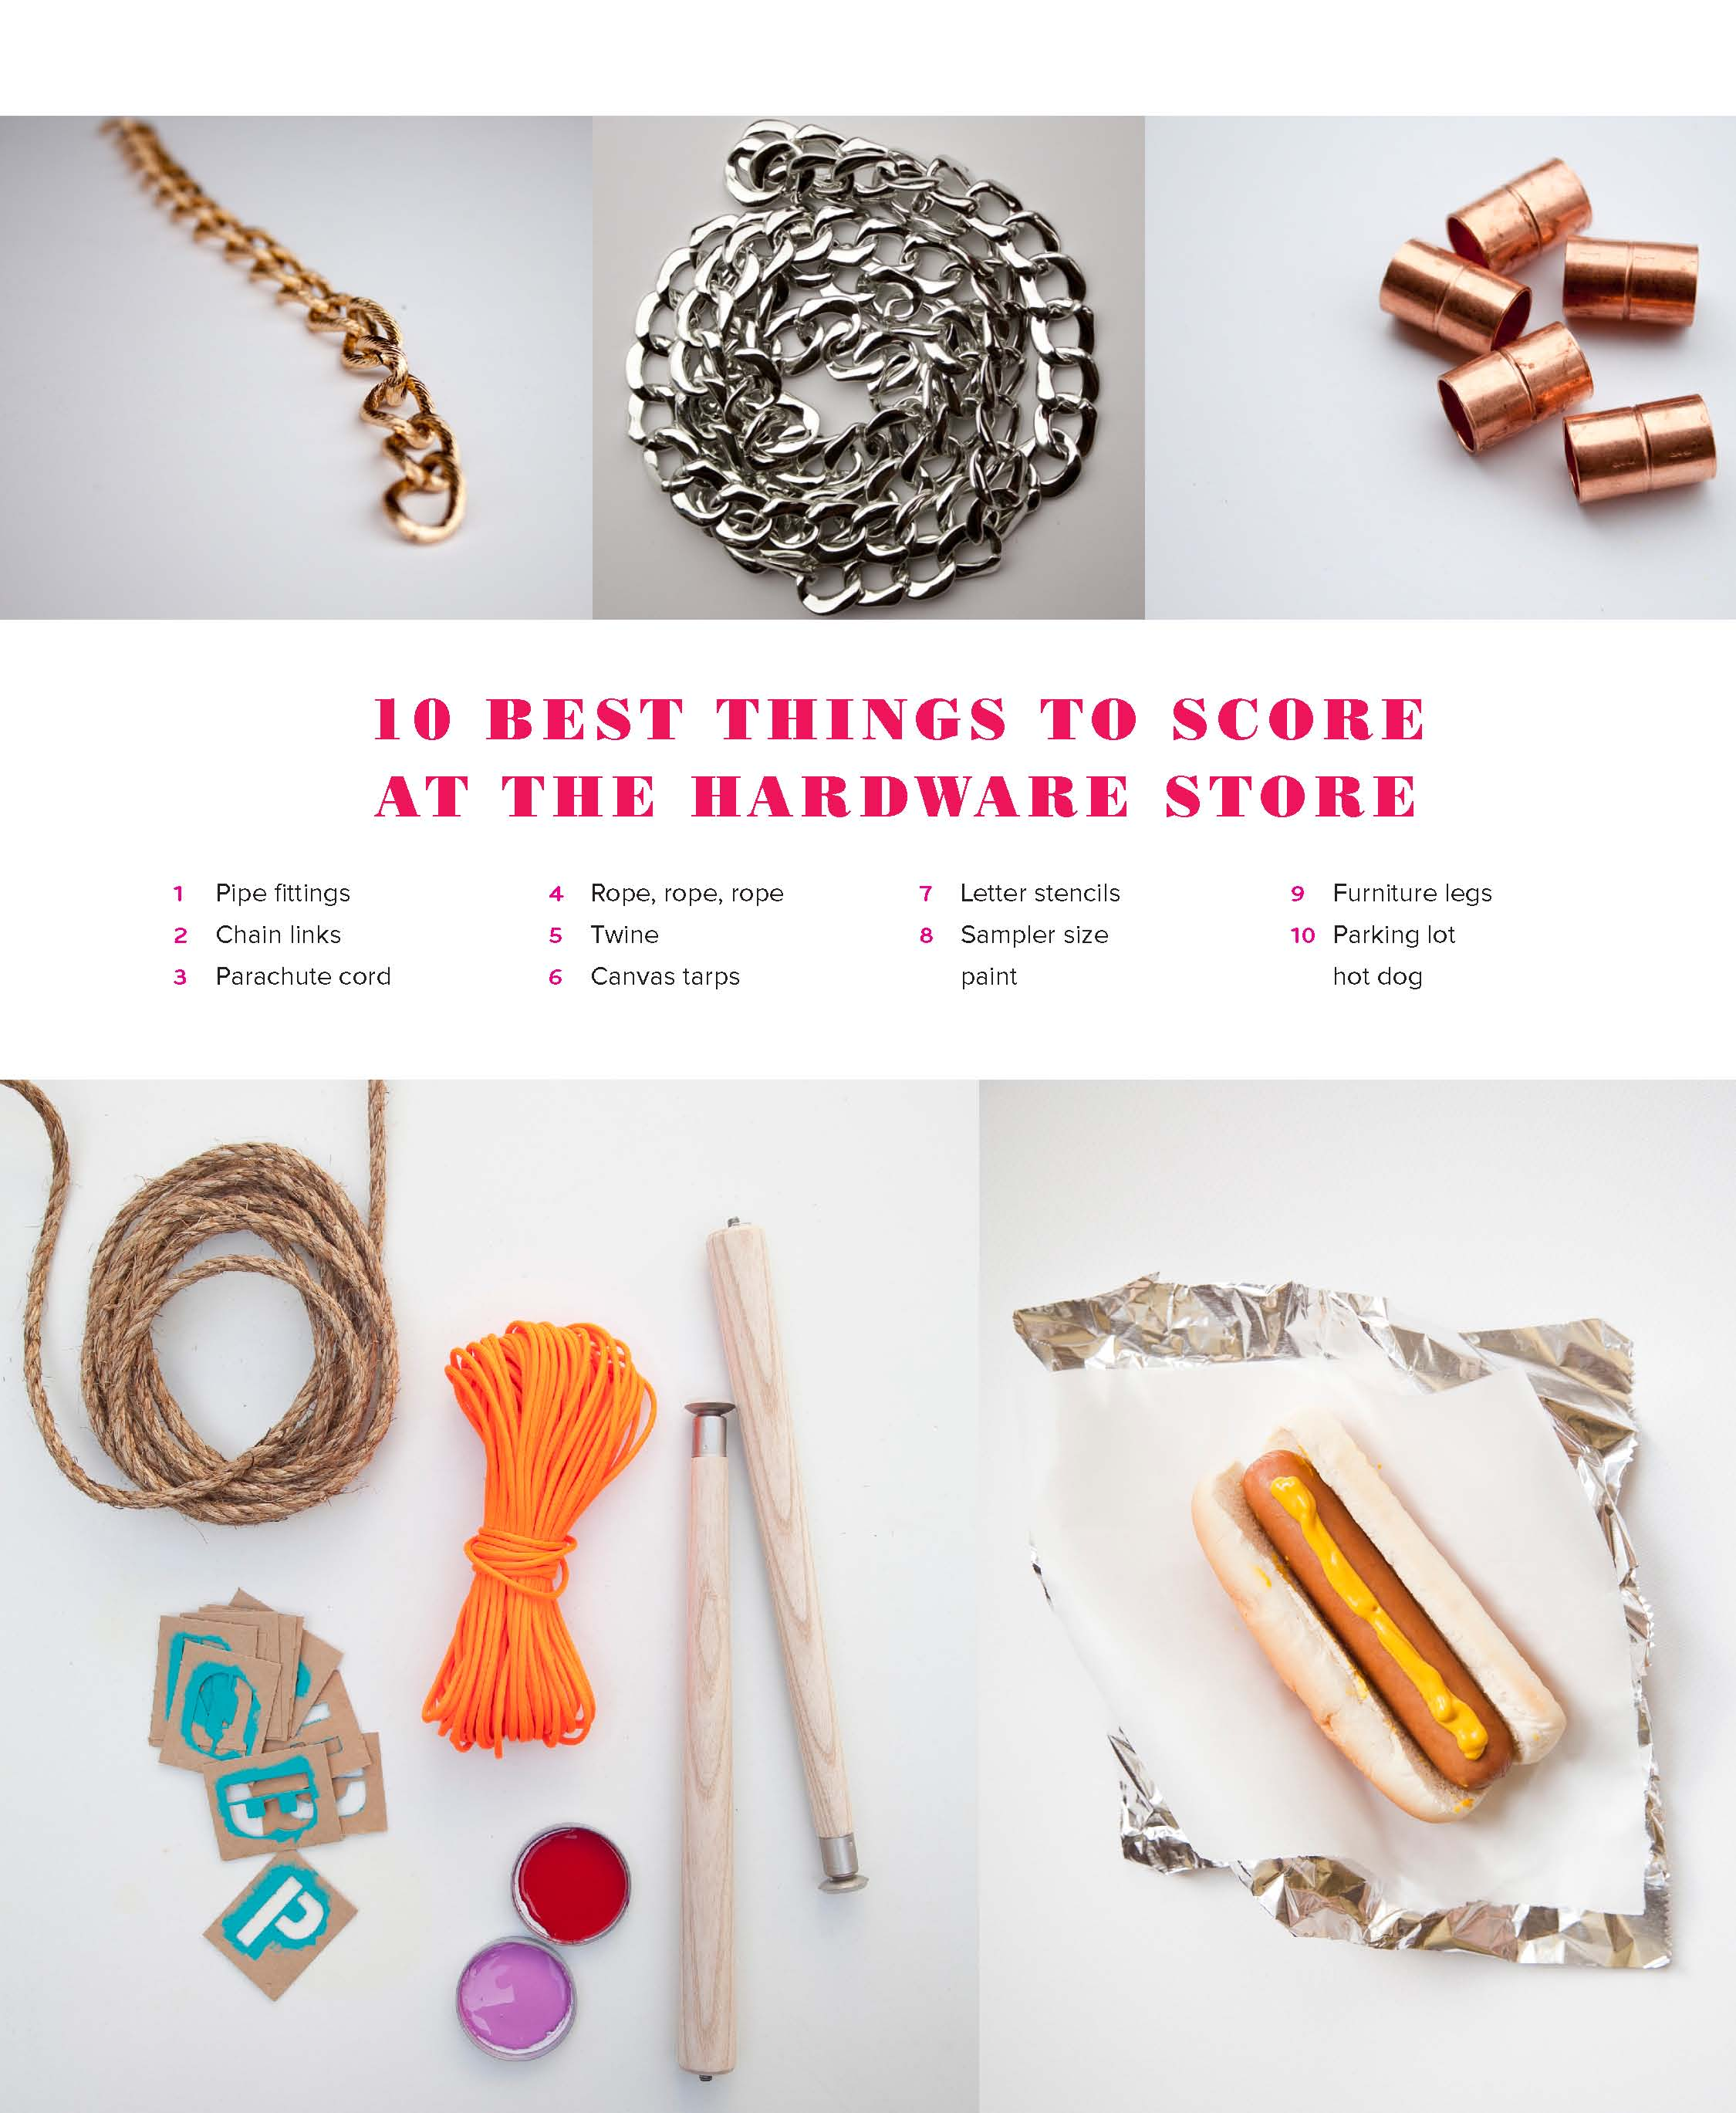 10 Best Hardware Store Decorating Scores